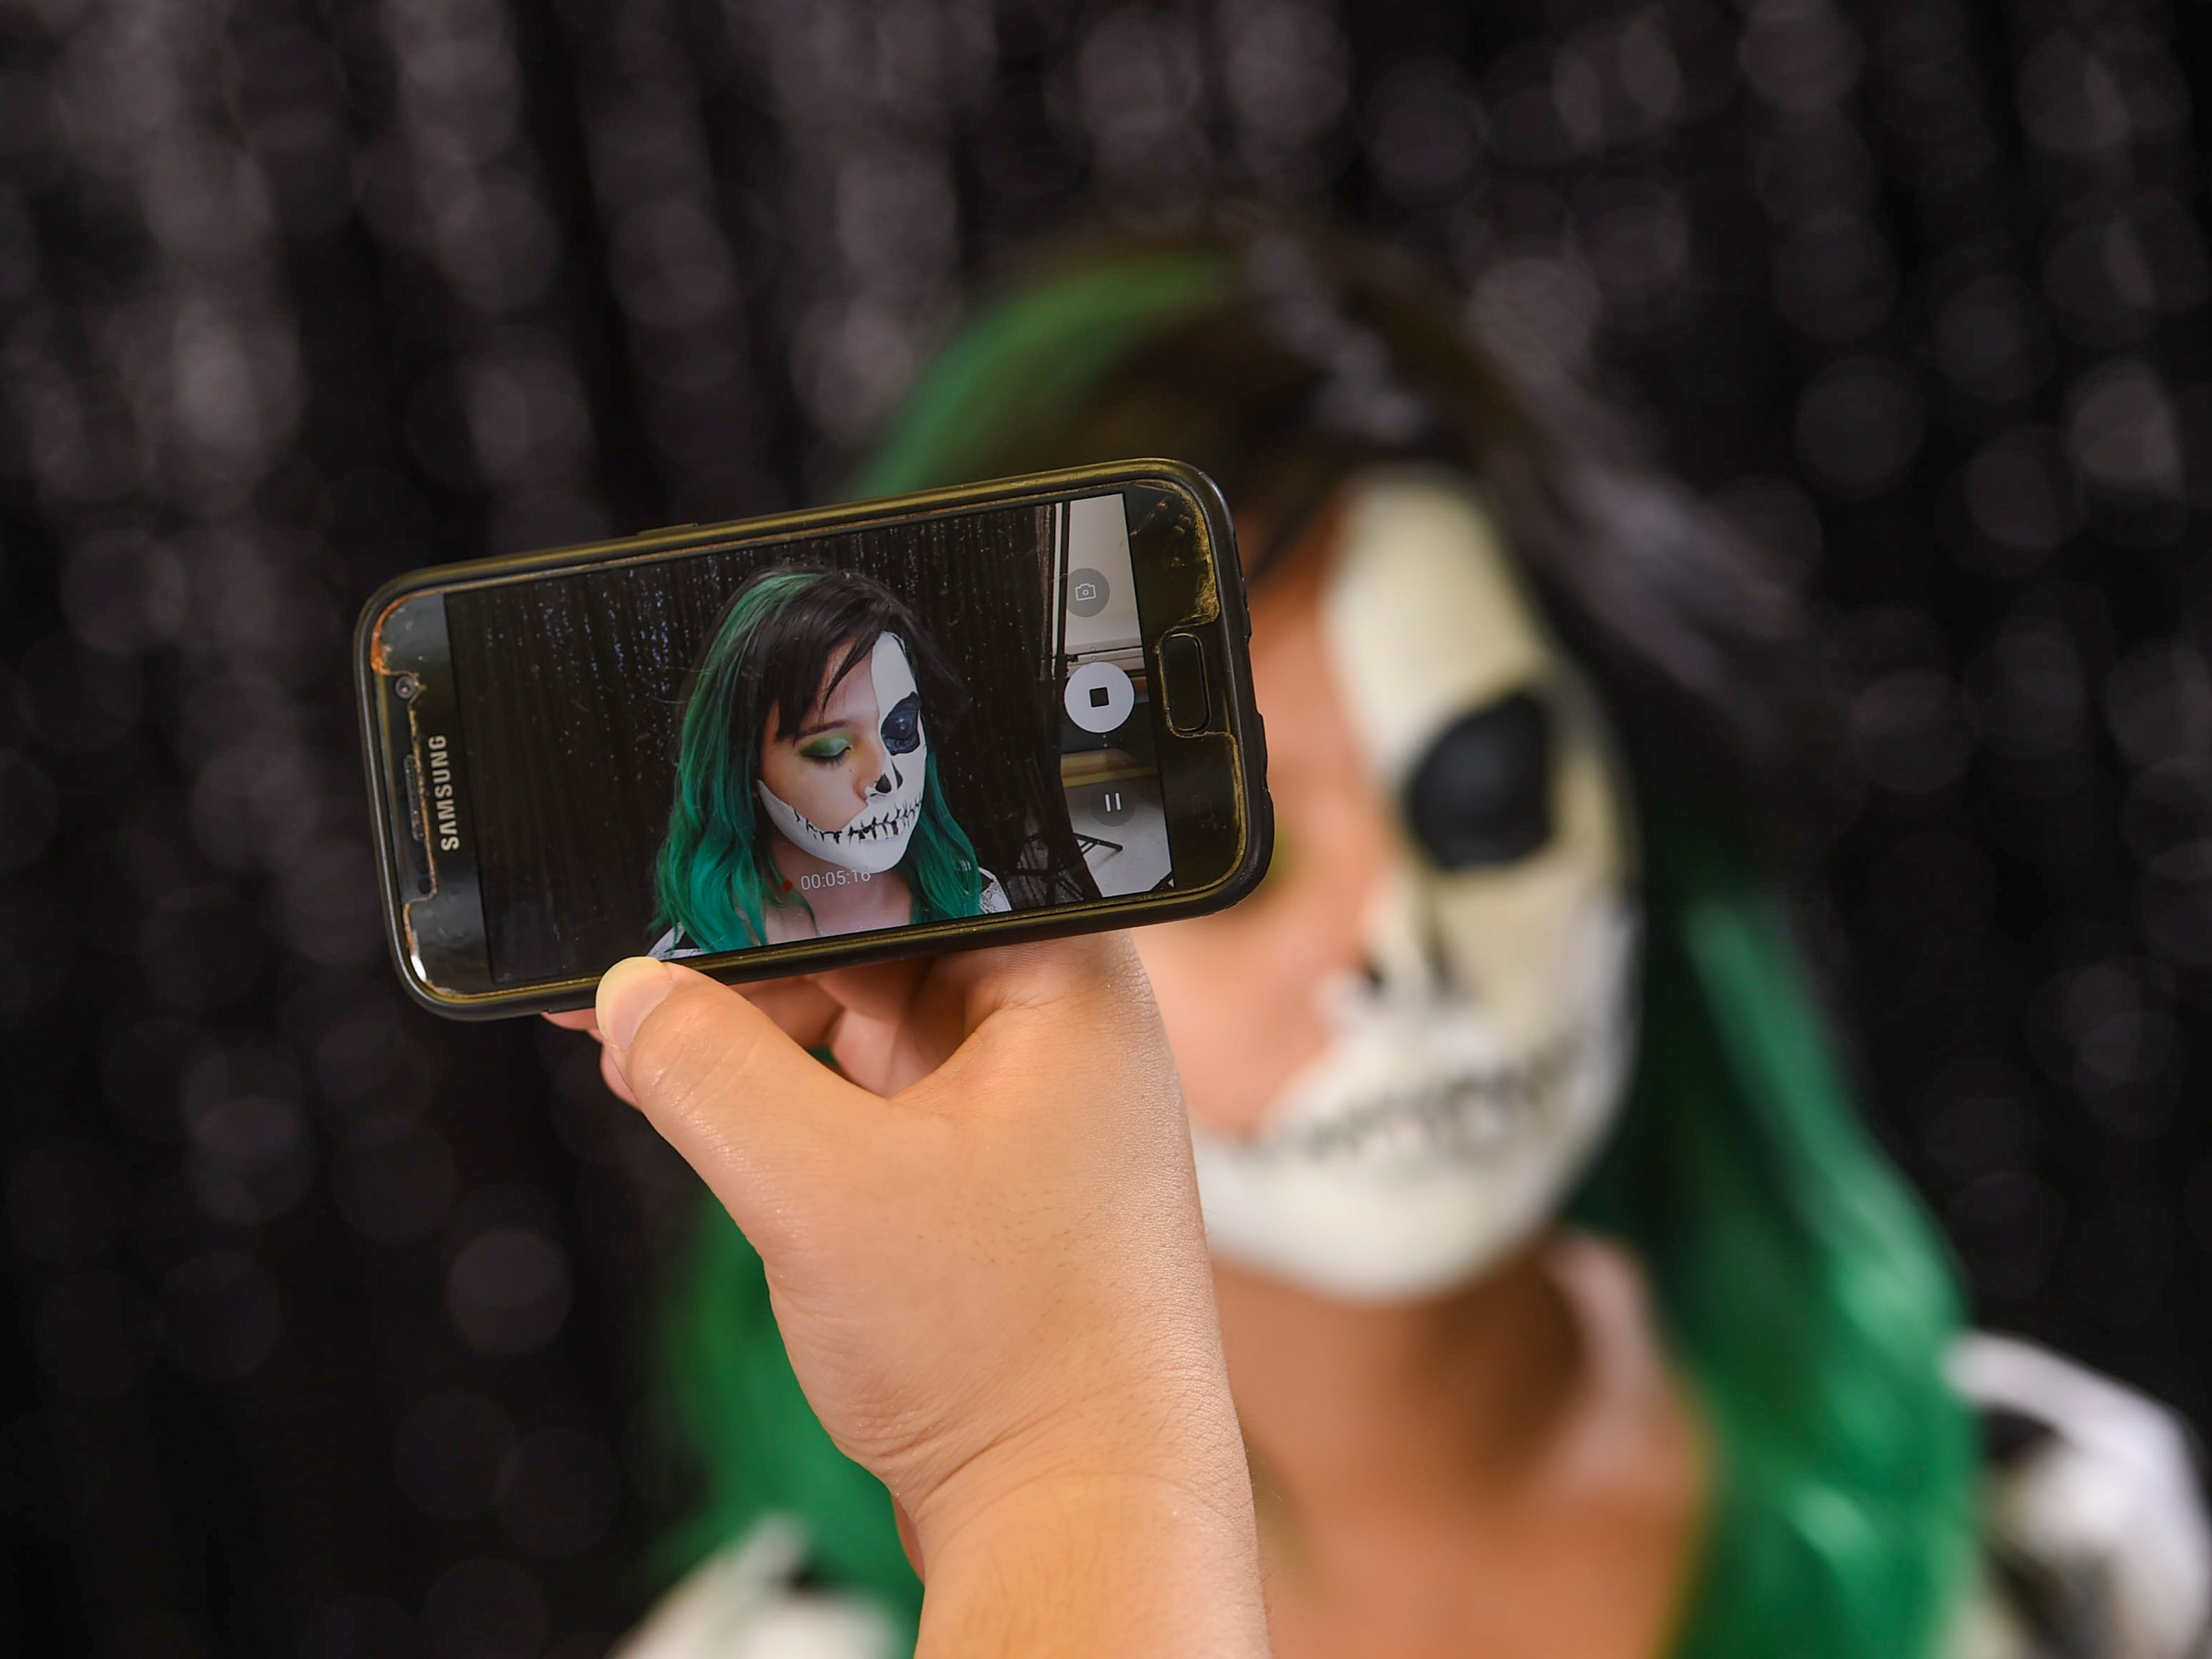 The makeup process can be photographed with any cellular phone.